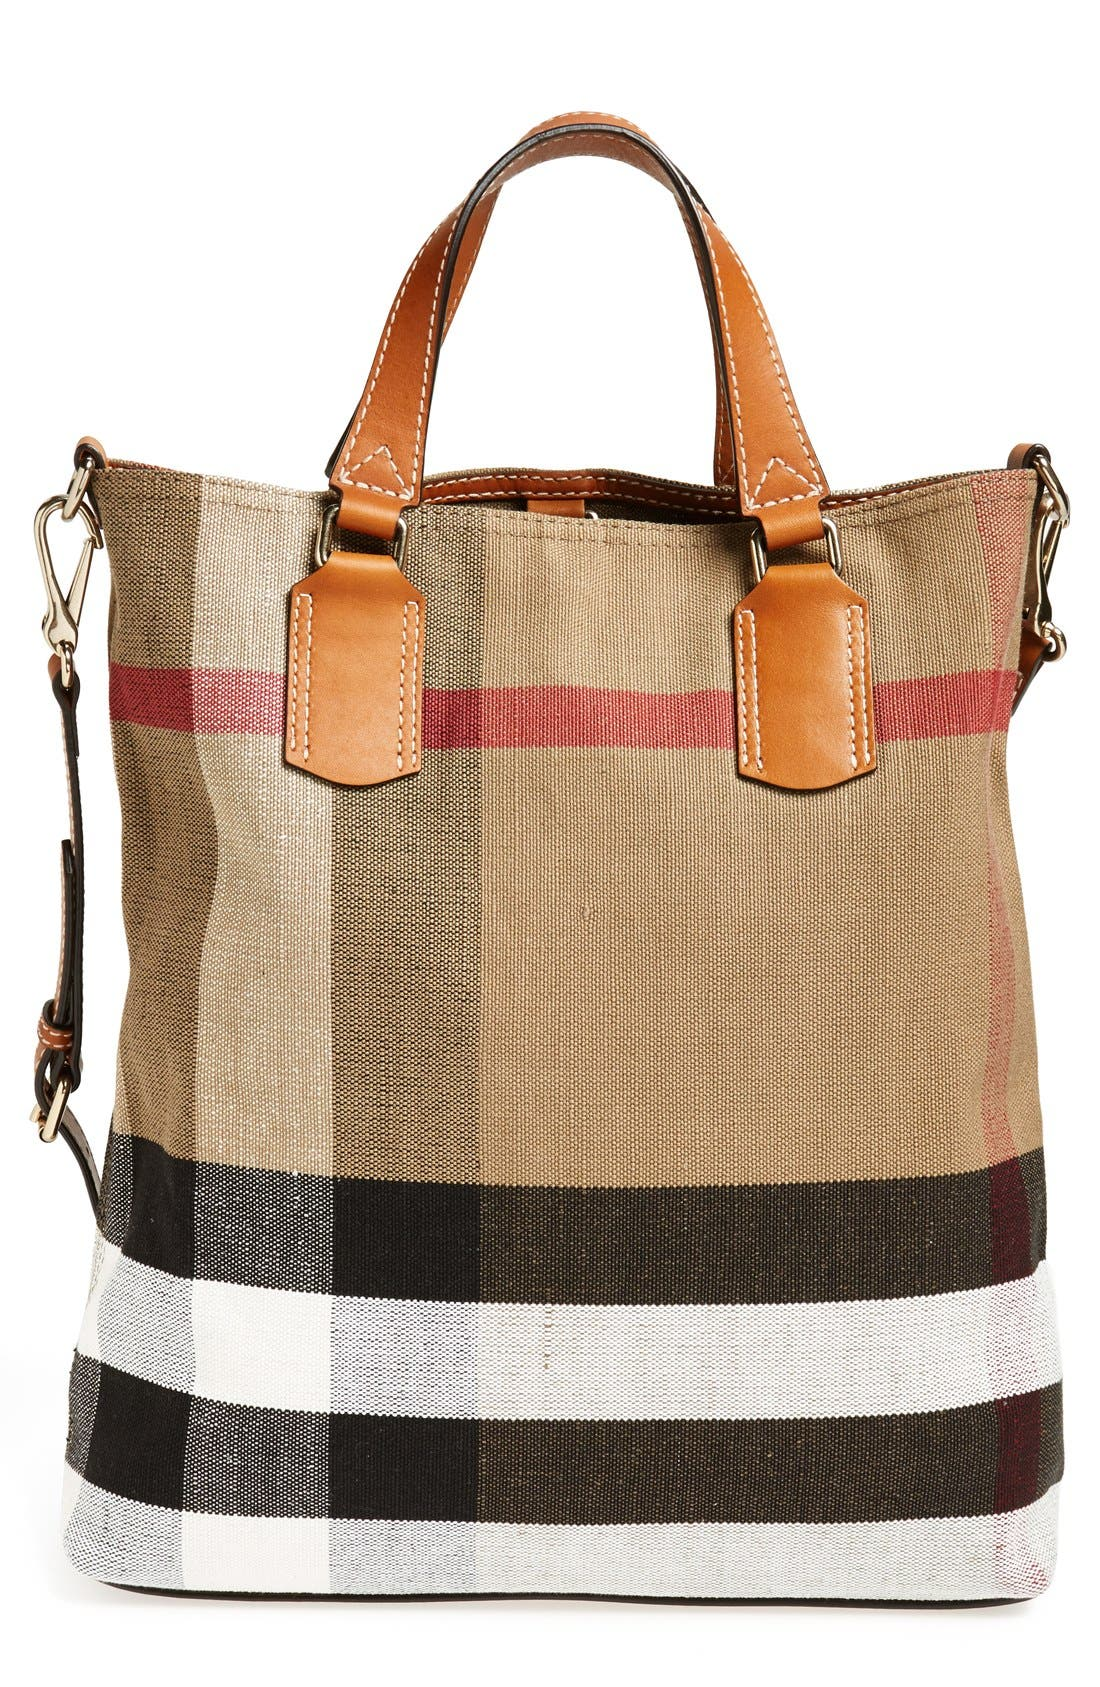 Alternate Image 1 Selected - Burberry Brit 'Medium Tottenham' Check Print Bucket Tote